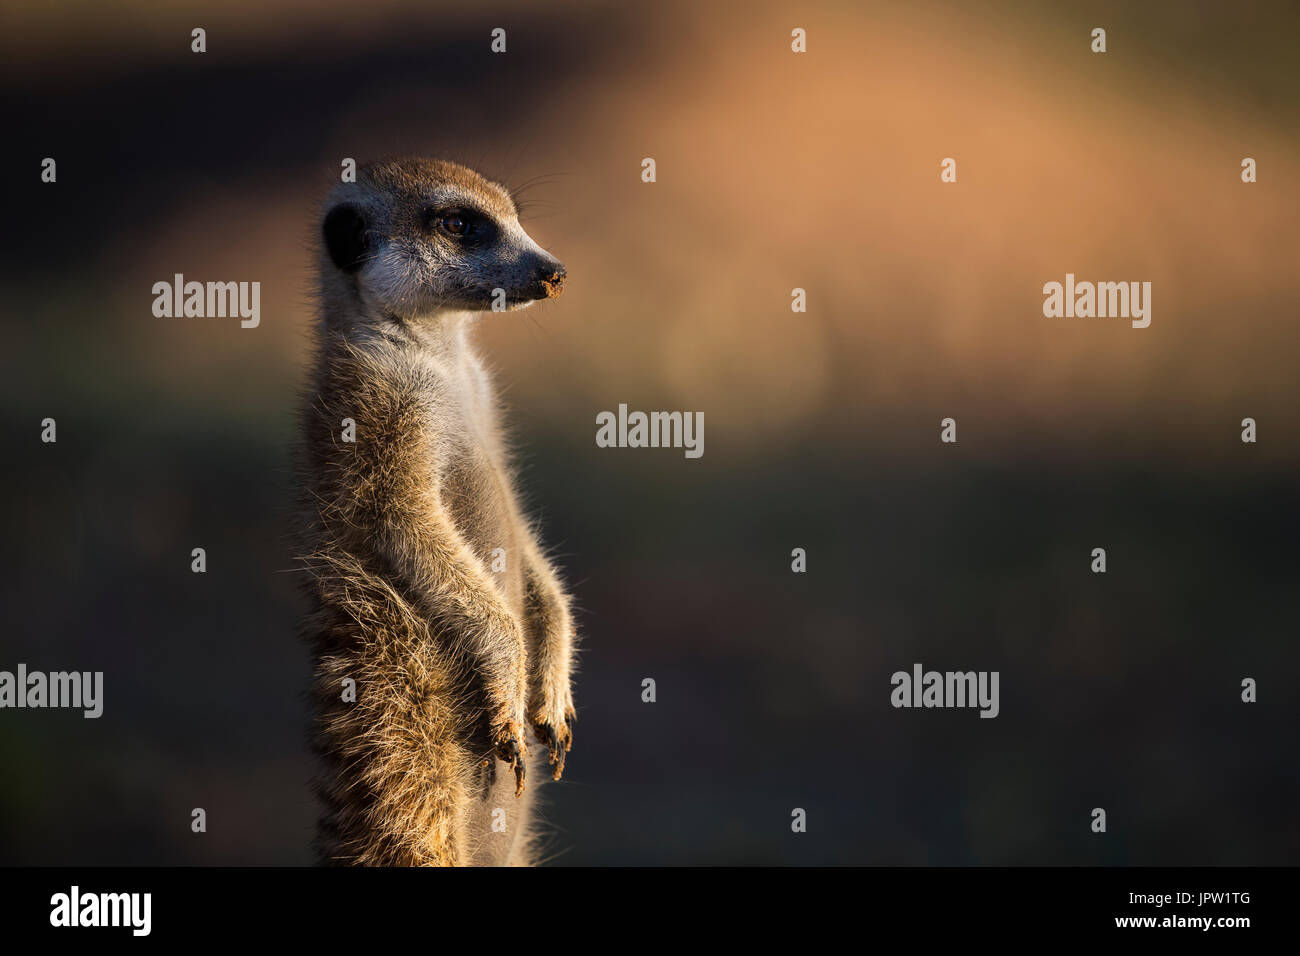 Meerkat (Suricata suricatta), Kgalagadi Transfrontier Park, Northern Cape, South Africa, January 2017 - Stock Image